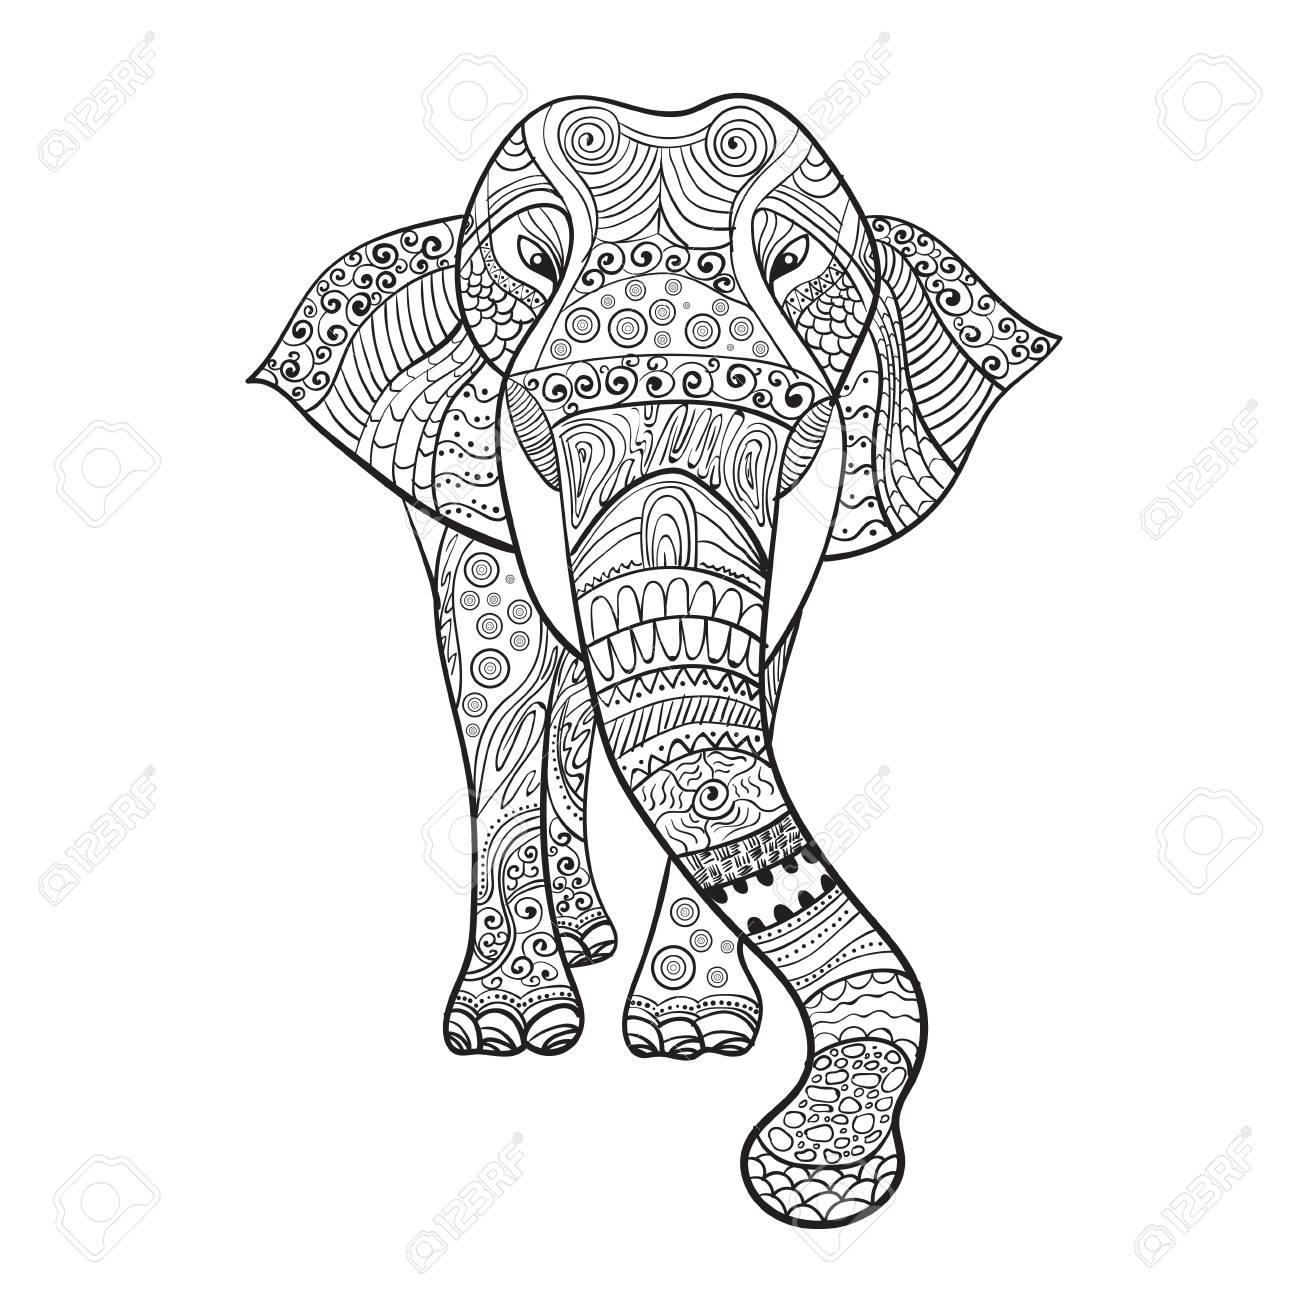 1300x1300 Elaphant Zentangle Animal For Coloring Book Vector Illustration